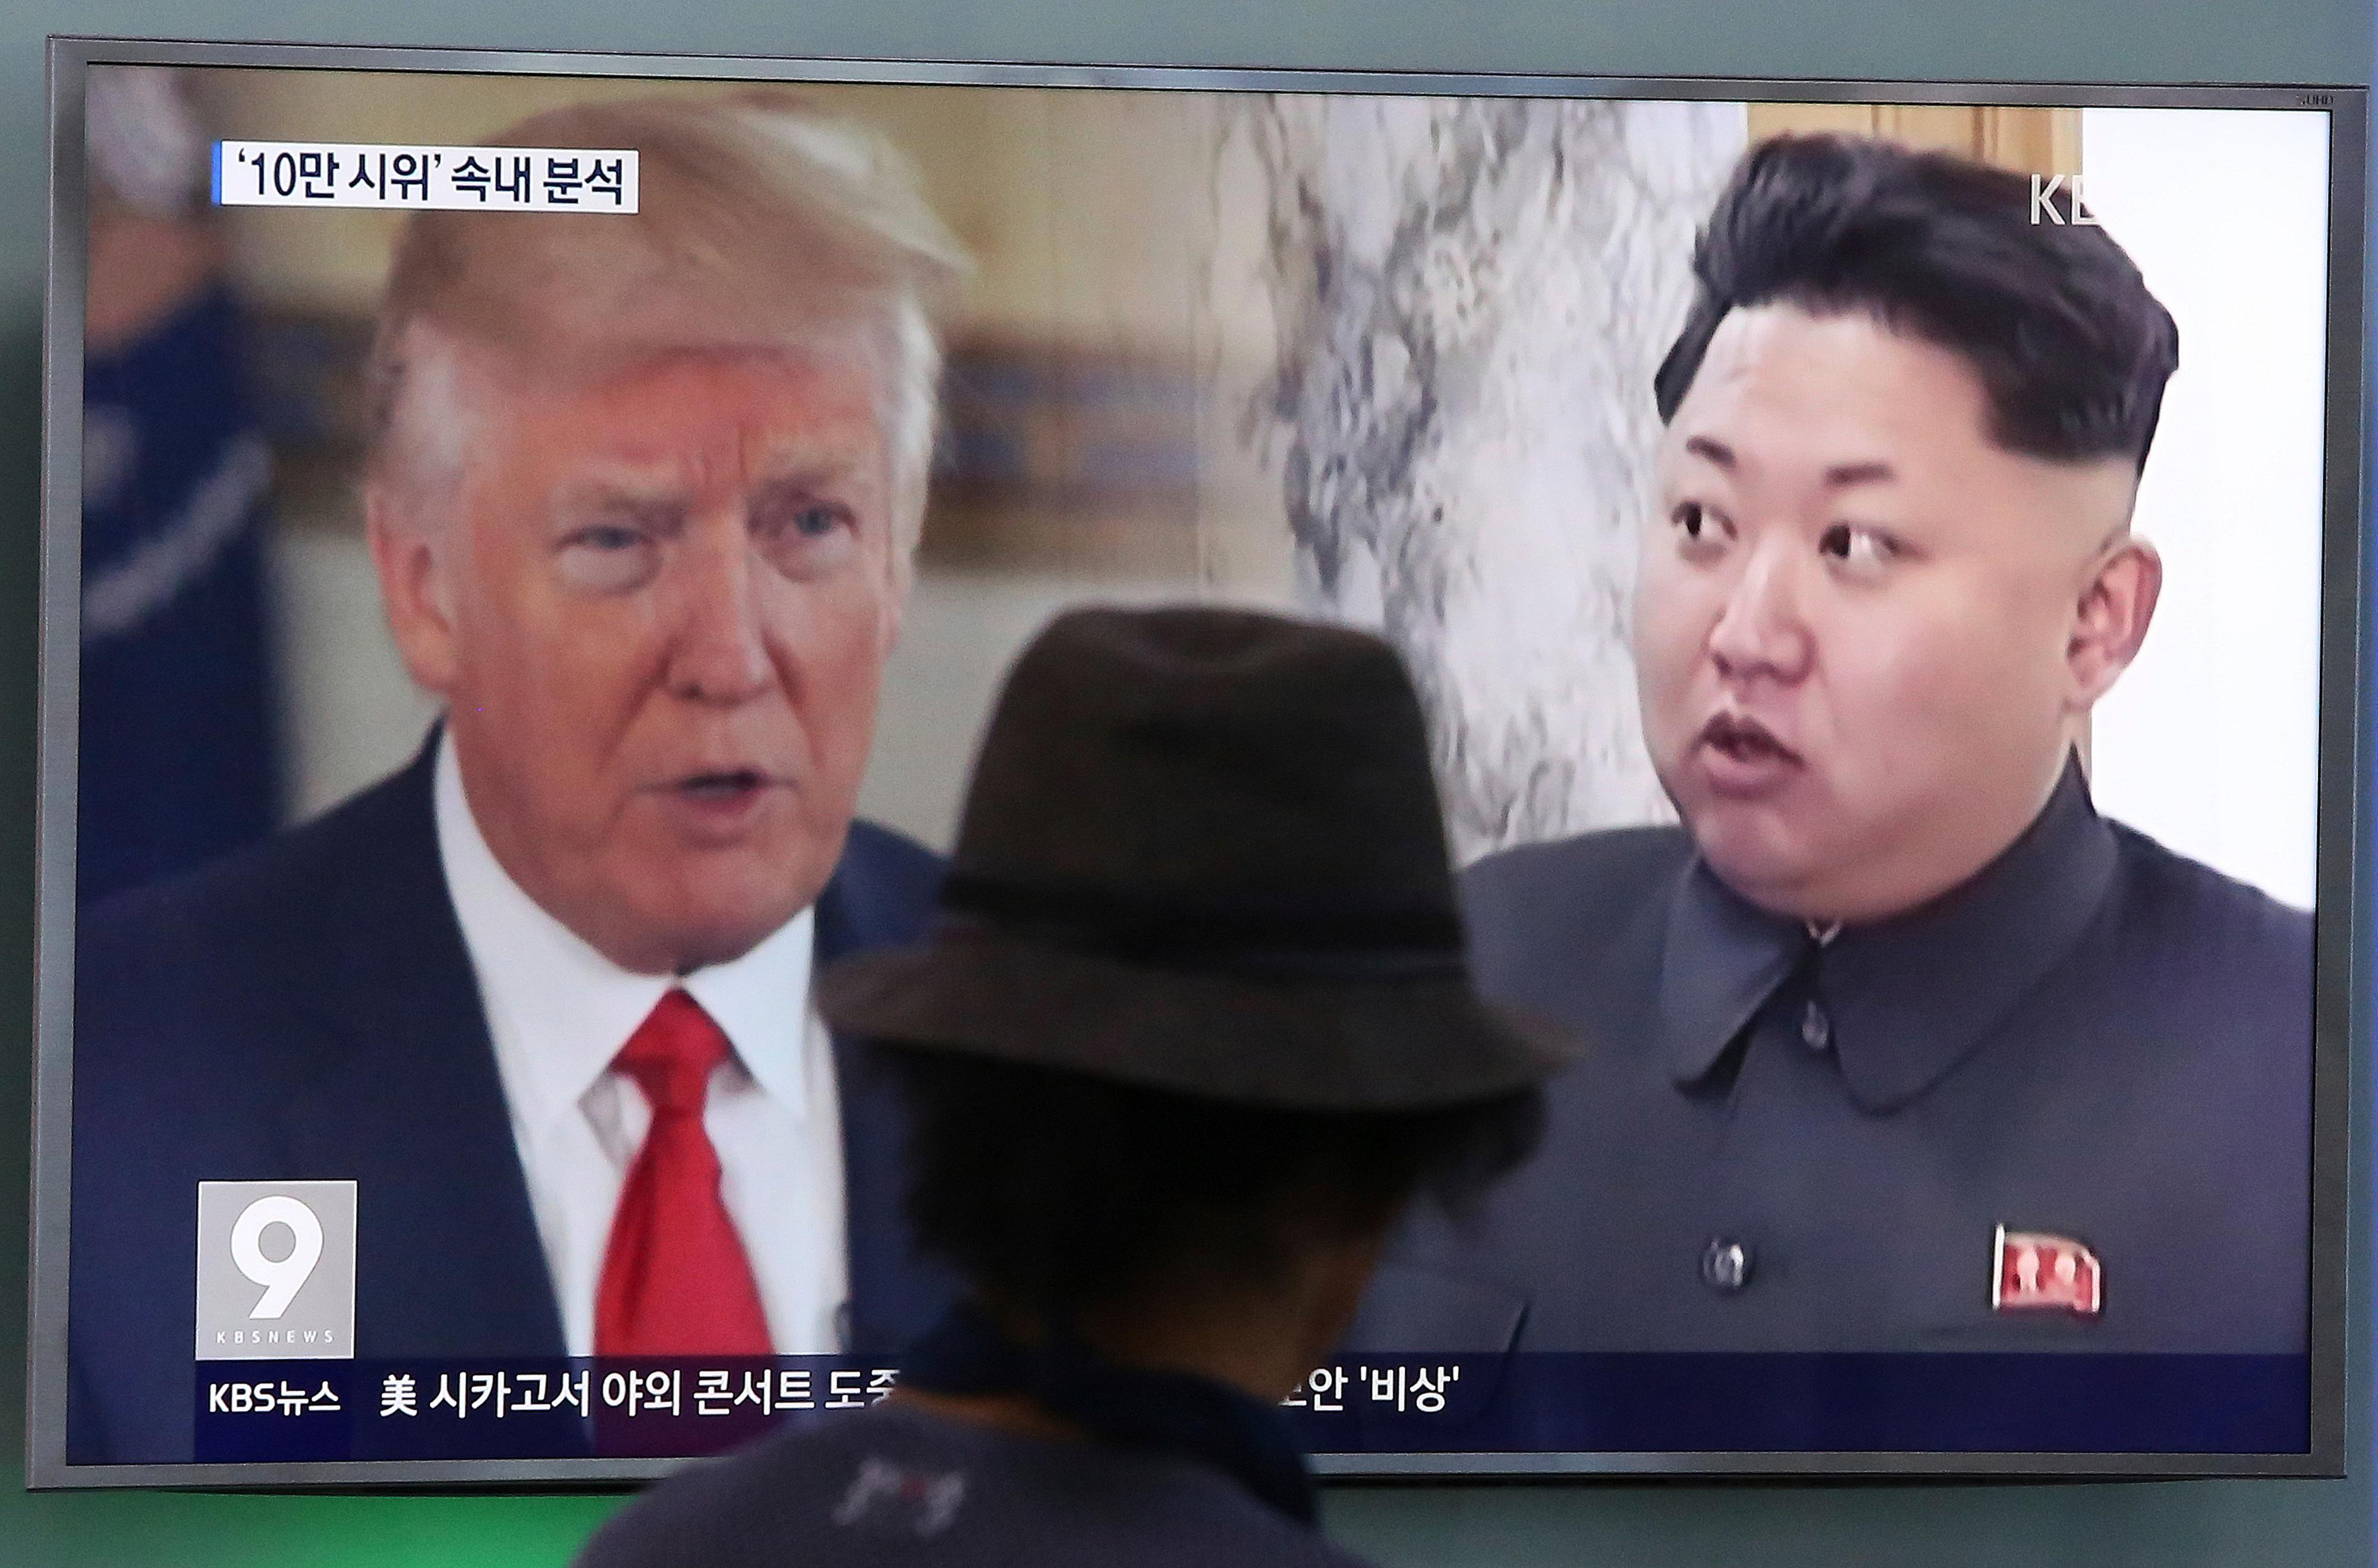 "FILE - In this Aug. 10, 2017, file photo, a man watches a television screen showing U.S. President Donald Trump and North Korean leader Kim Jong Un during a news program at the Seoul Train Station in Seoul, South Korea.  South Korea's national security director says President Donald Trump has decided he will meet with North Korea's Kim Jong Un ""by May.""Chung Eui-yong spoke outside the White House, Thursday, March 8, 2018,  after a day of briefings with senior U.S. officials, including Trump, on the recent inter-Korea talks. Chung says Trump said ""he would meet Kim Jong Un by May to achieve permanent denuclearization"" of the Korean peninsula. (AP Photo/Ahn Young-joon, File)"